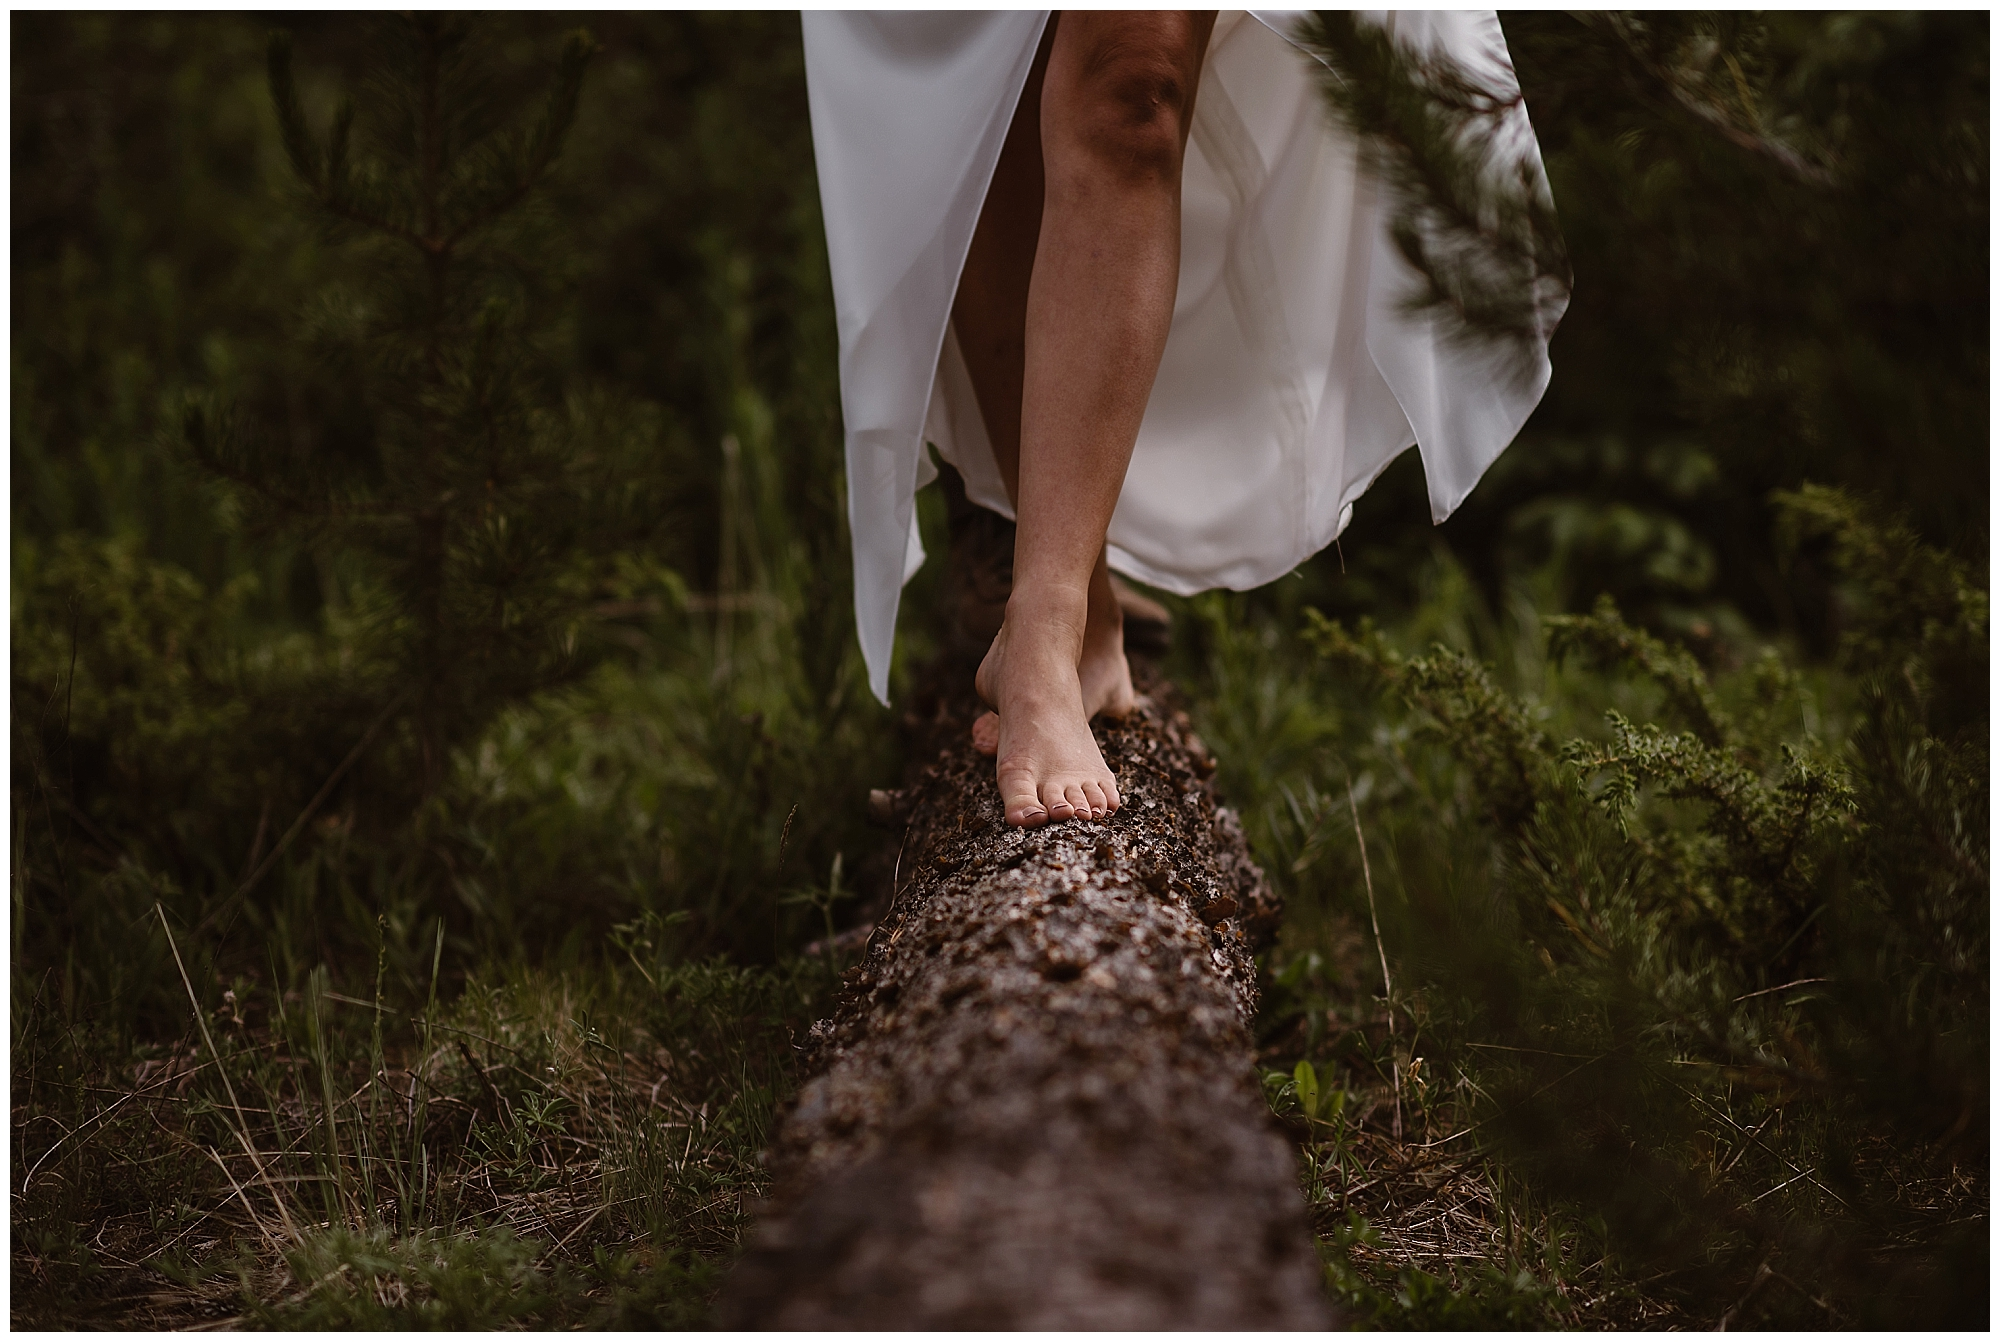 A bride walks through a forest barefoot during her elopement ceremony. Where you elope and how you say your vows matters! Photo by Maddie Mae, Adventure Instead Elopement Photographers.